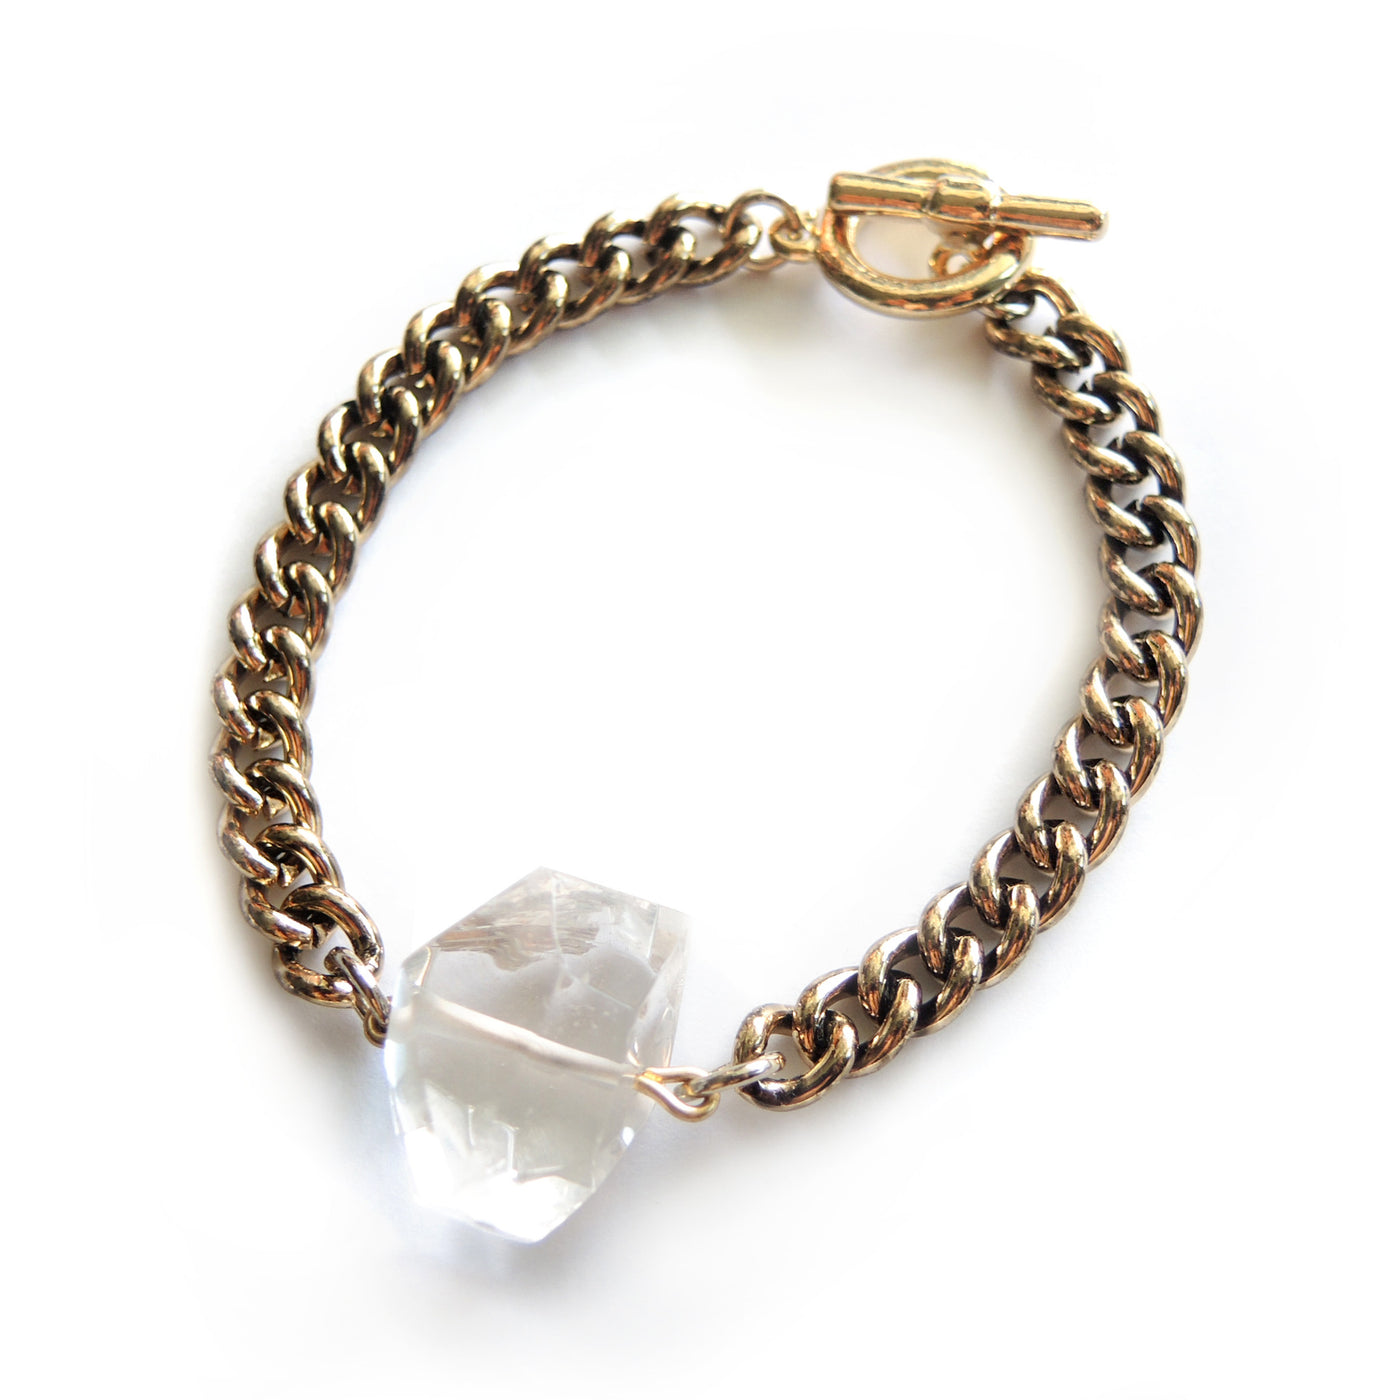 Clear Quartz Antique Gold Bracelet - Chainless Brain